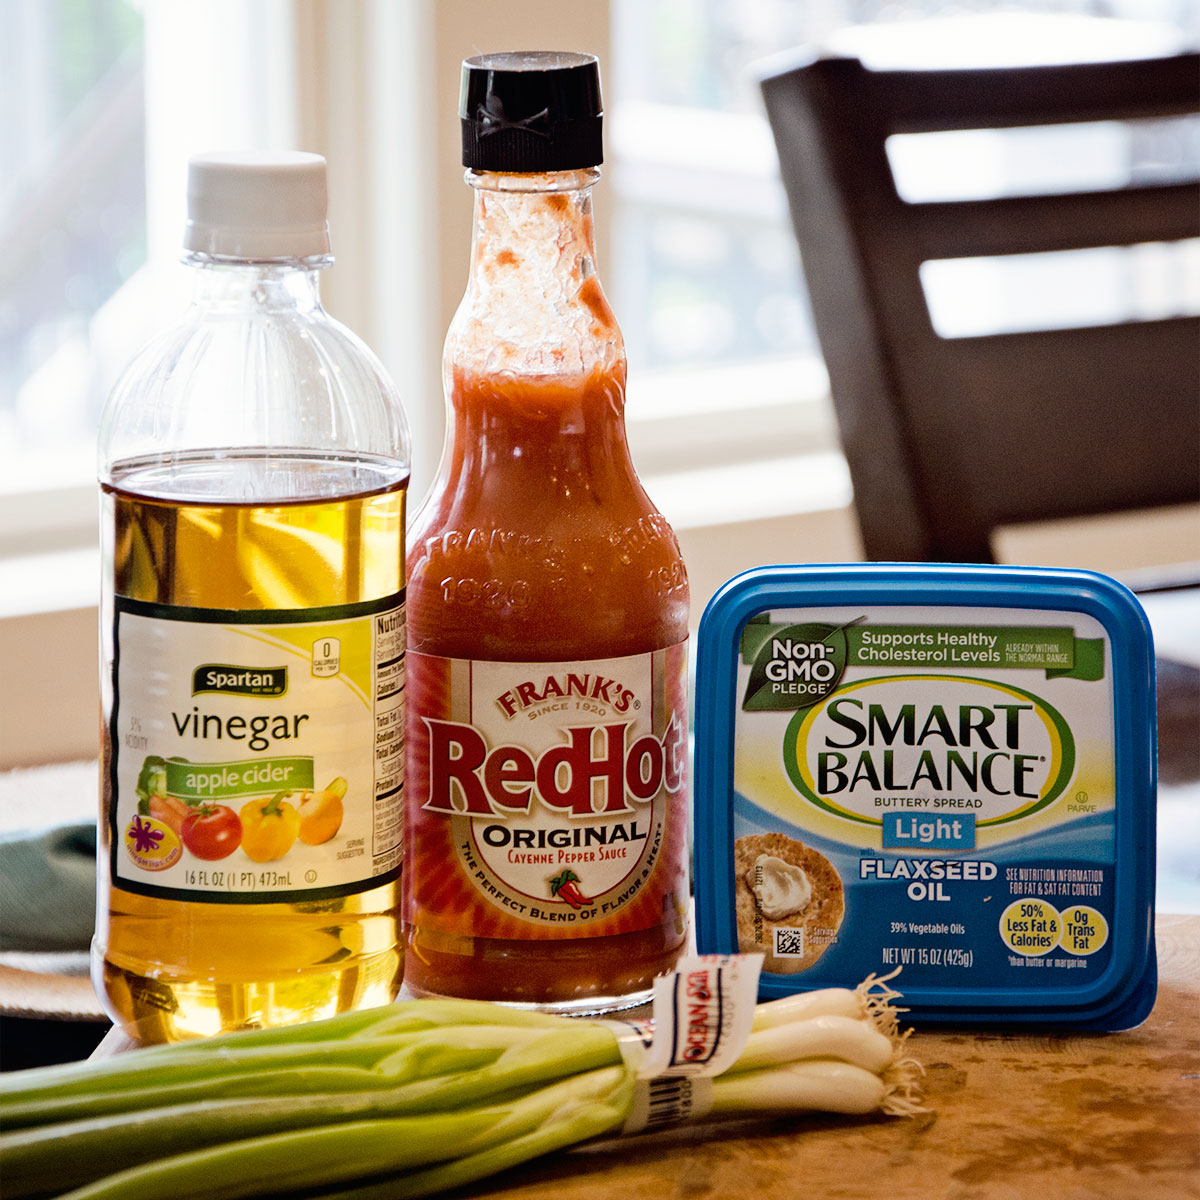 A table displaying how to finish off your healthy chicken wing recipe with tasty sauces like Spartan Vinegar, Frank's RedHot, and SmartBalance Buttery Spread